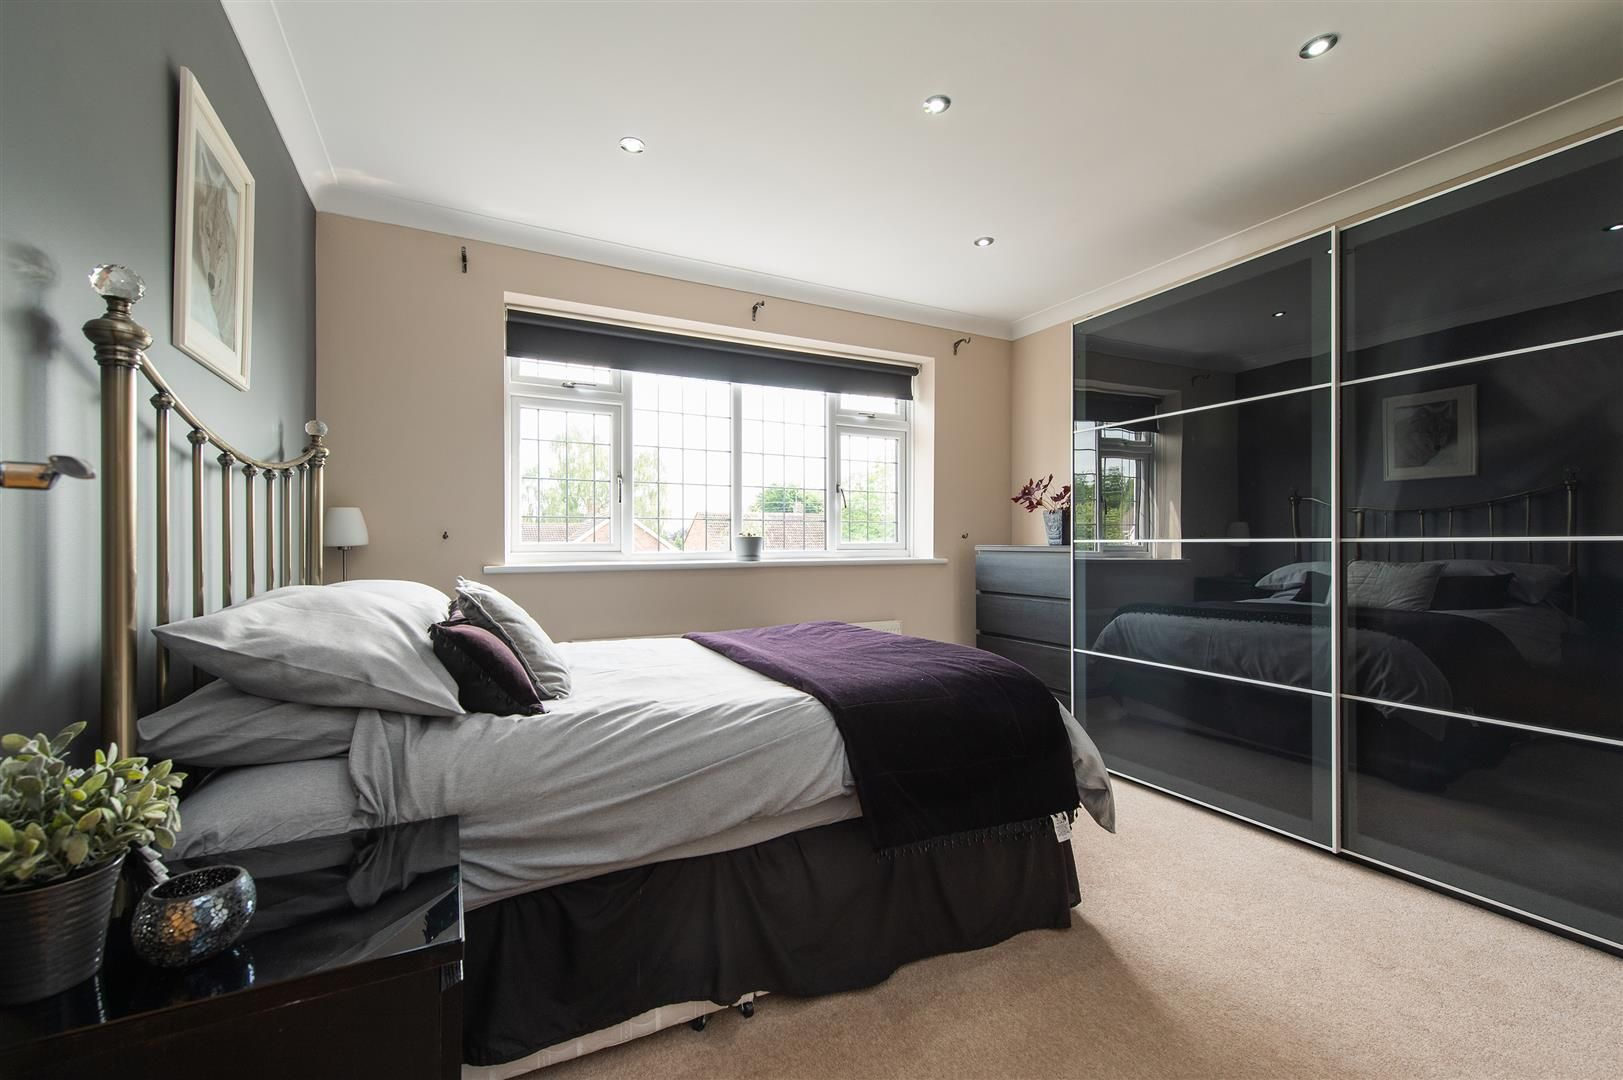 5 bed detached for sale in Hagley 23